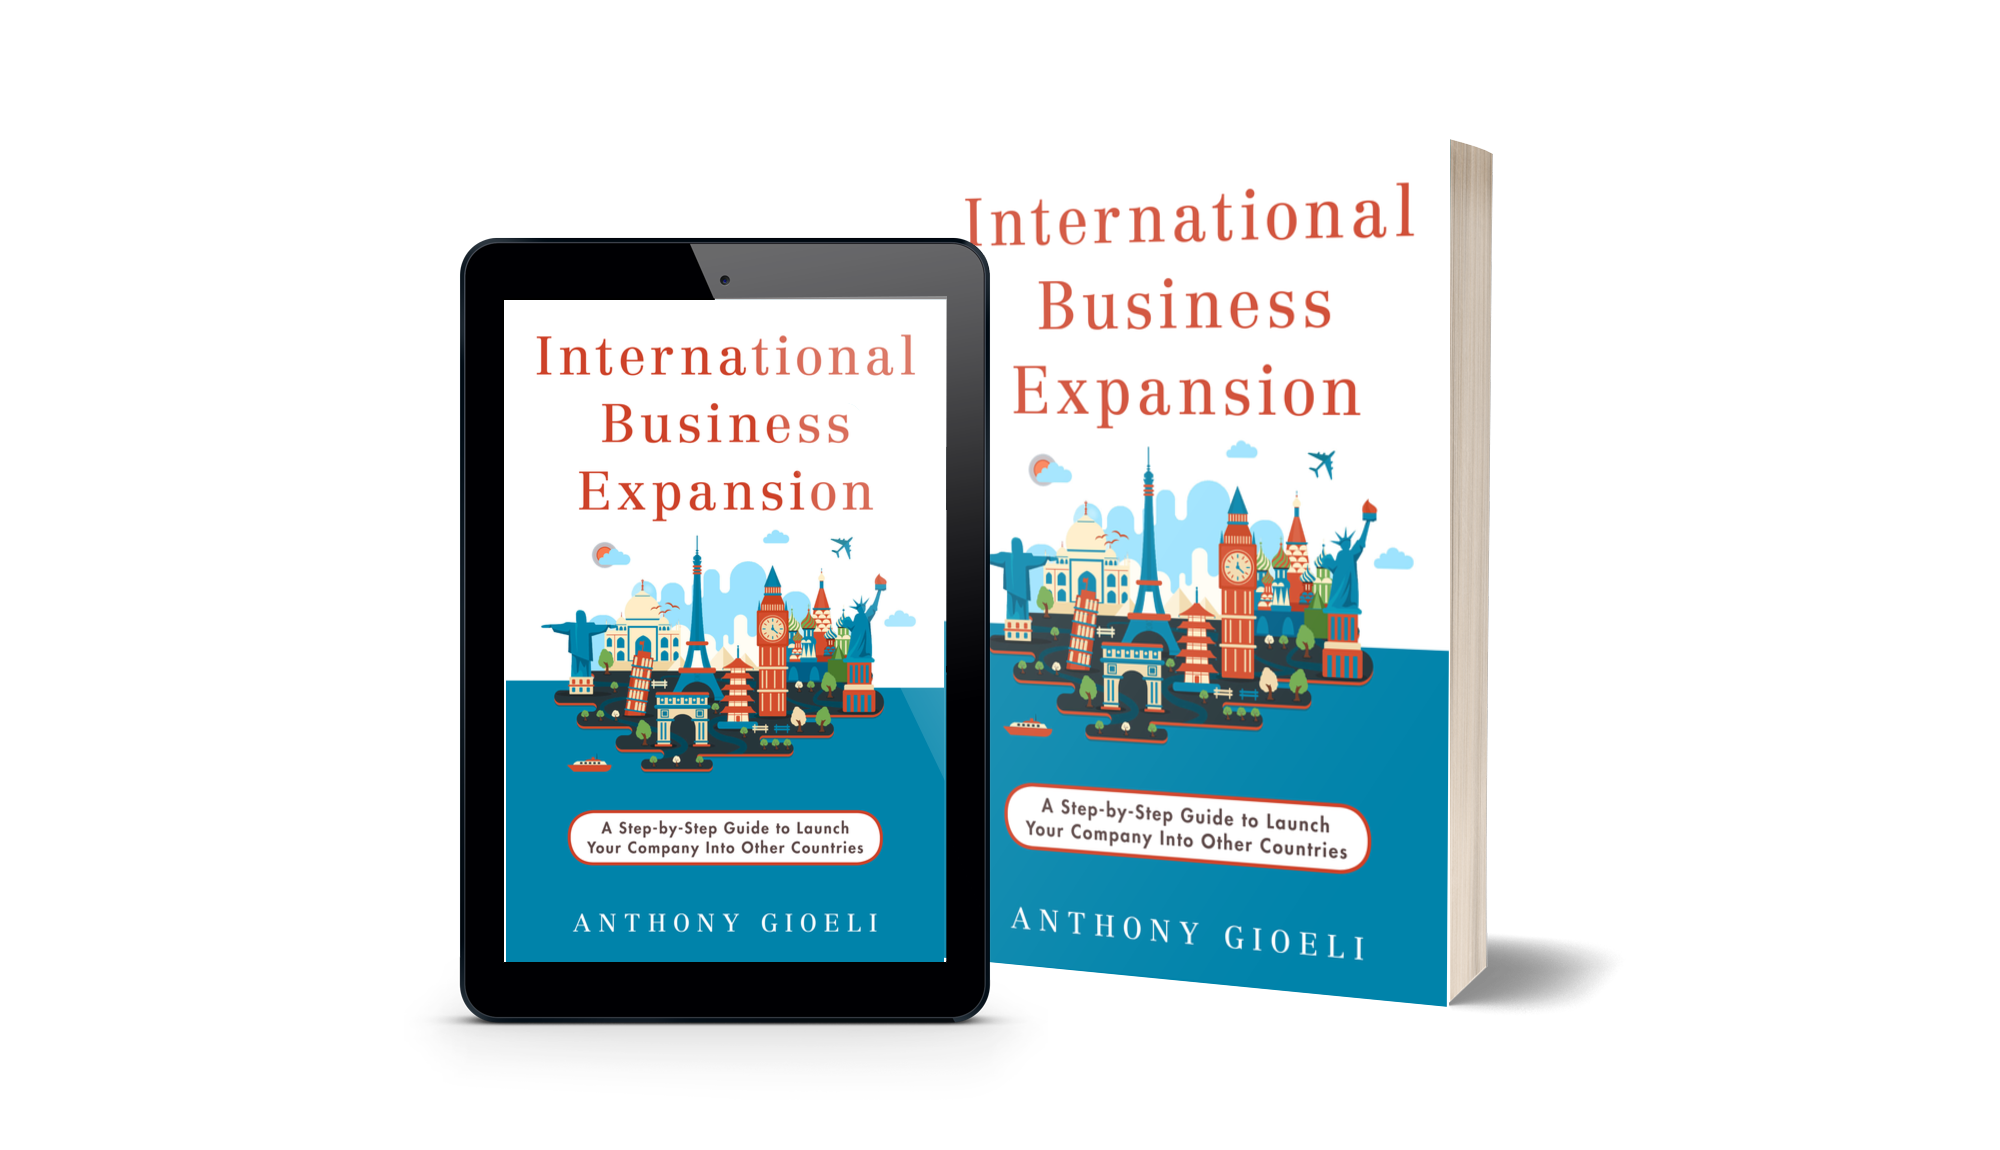 International Business Expansion Book